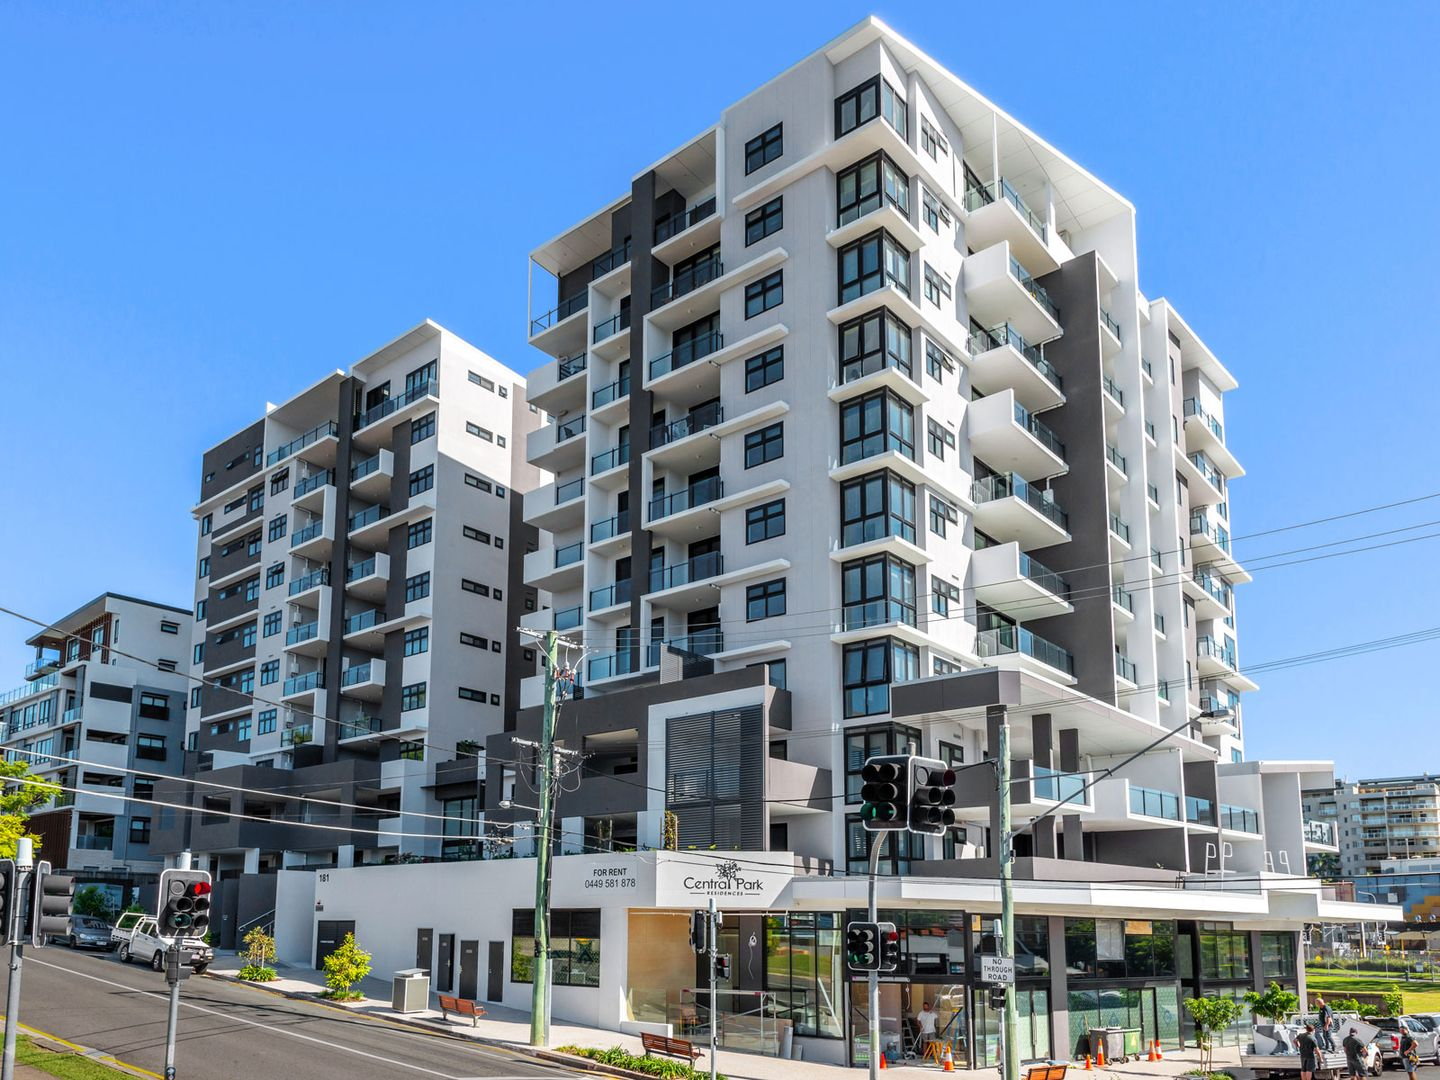 131/181 Clarence Rd, Indooroopilly QLD 4068, Image 0